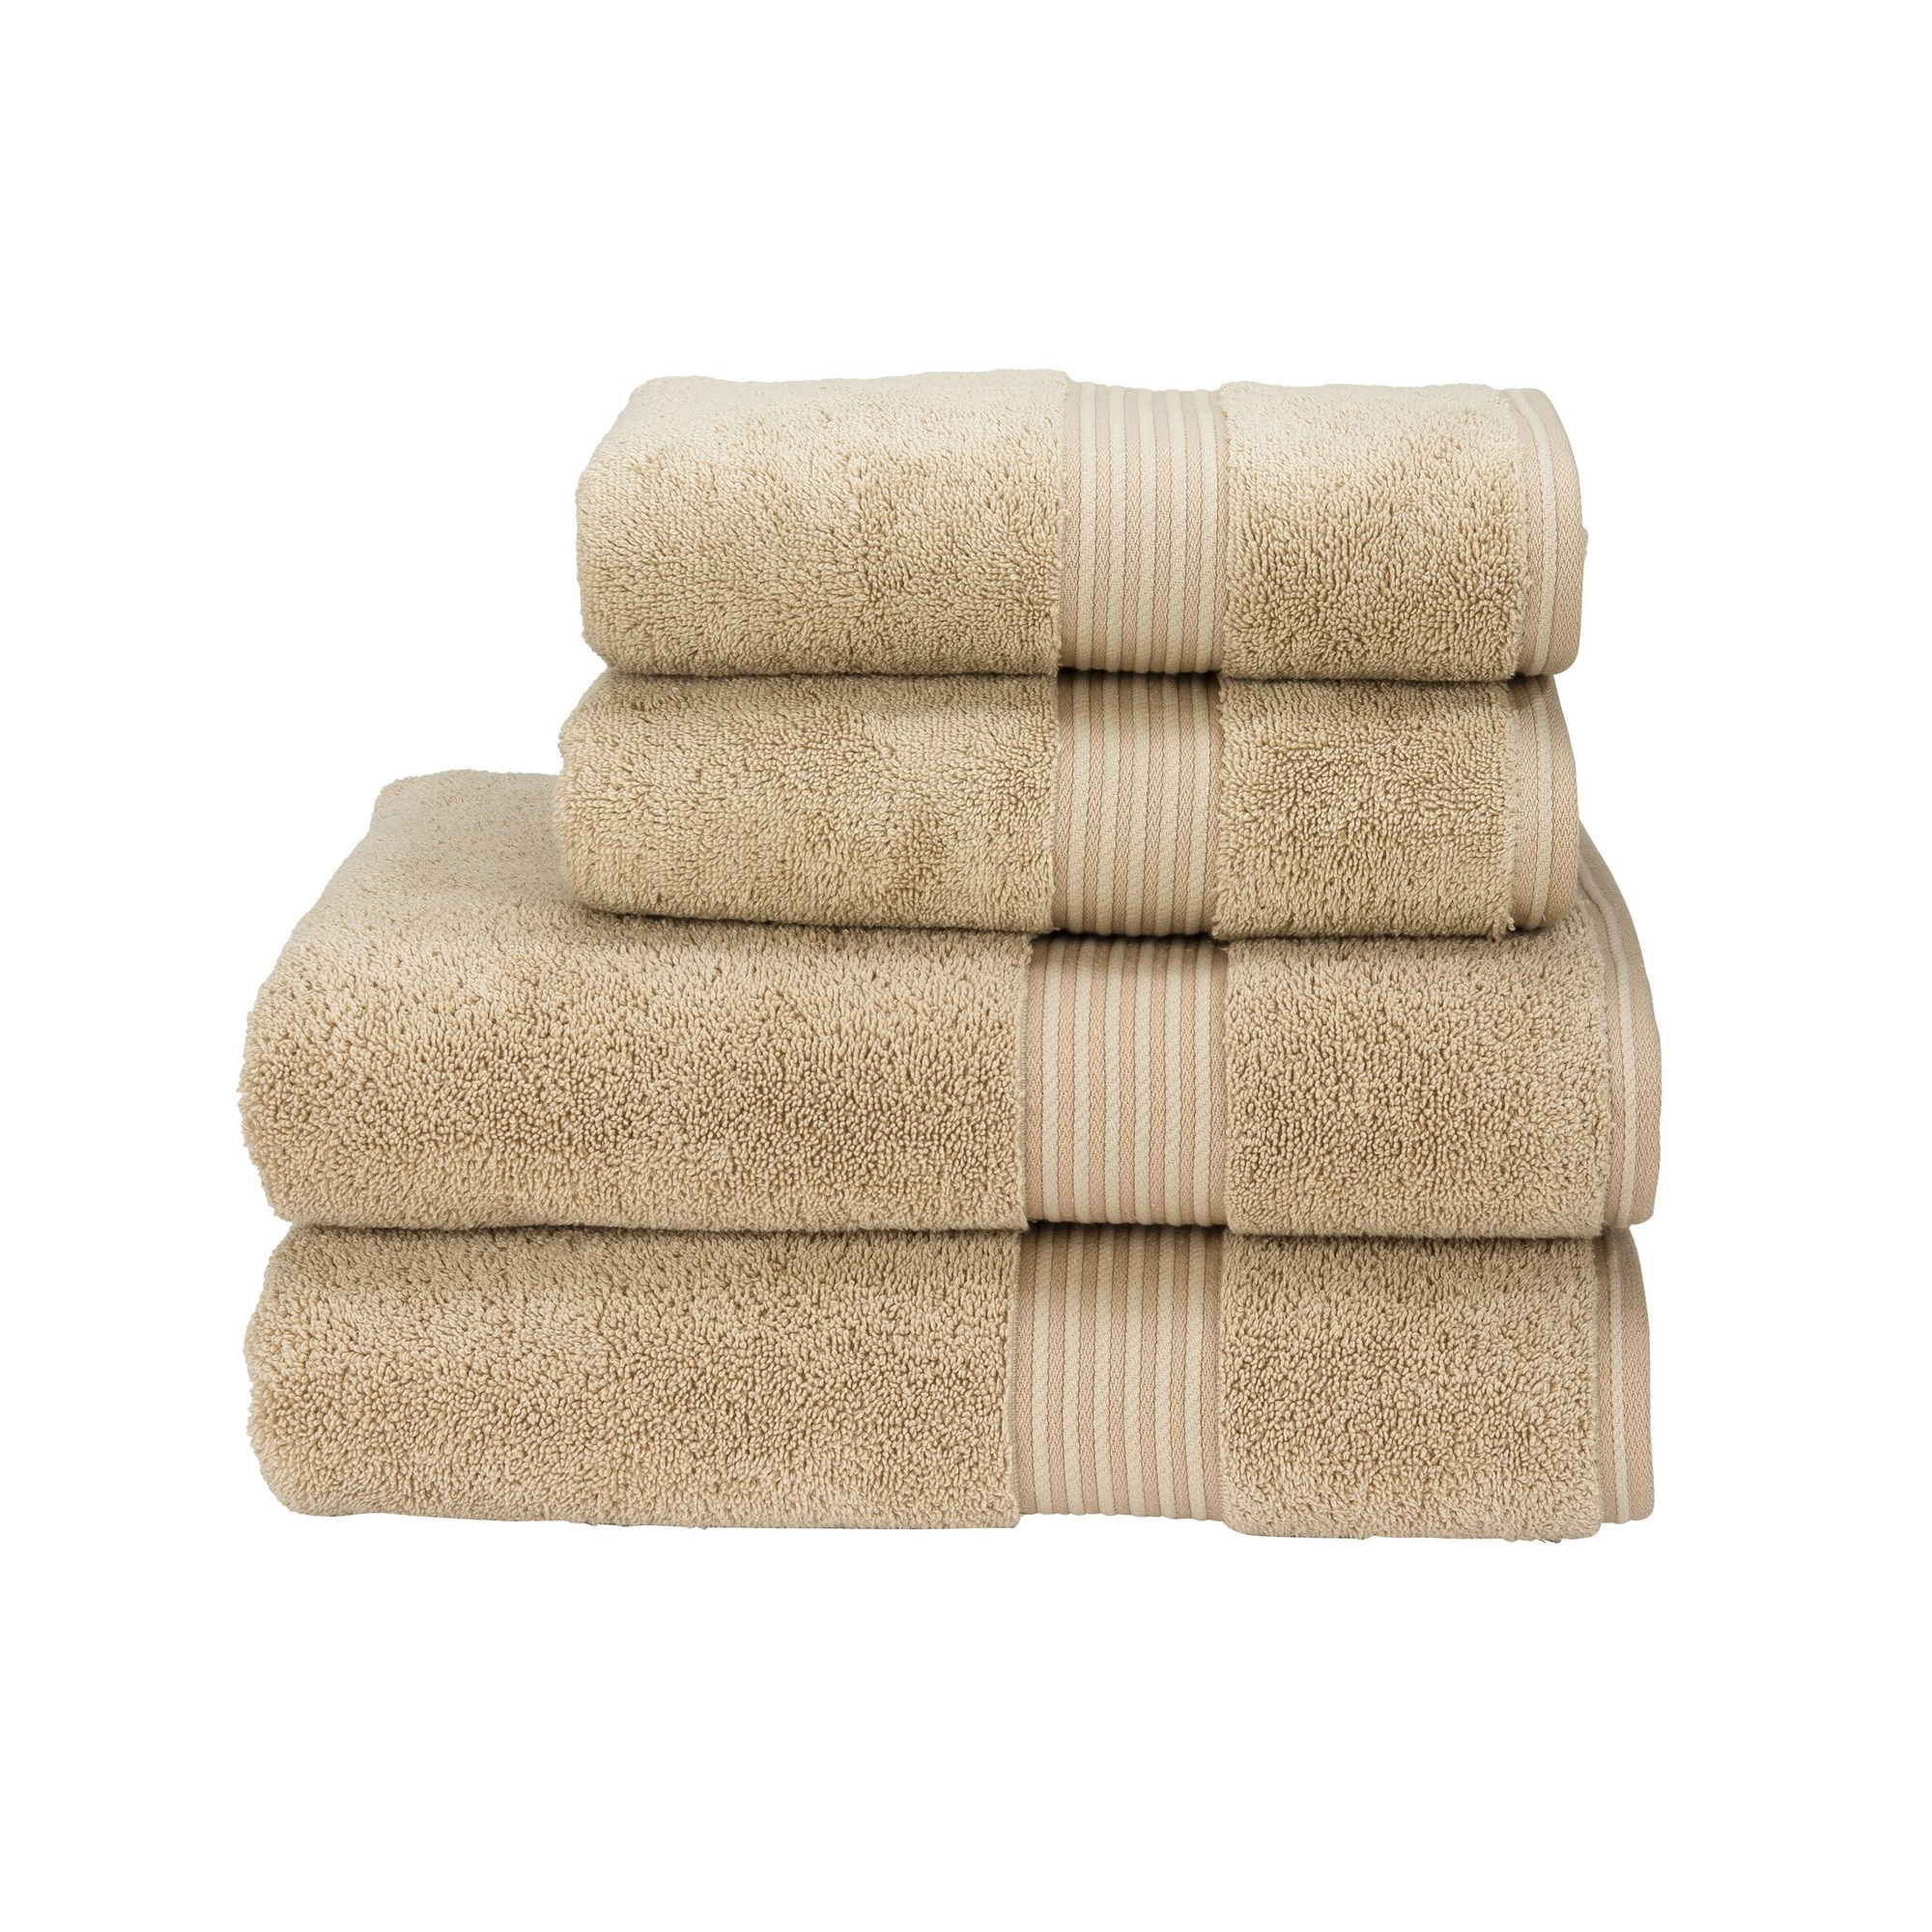 Christy towels supreme hygro bathroom guest towel 40cm x for Bathroom hand towels